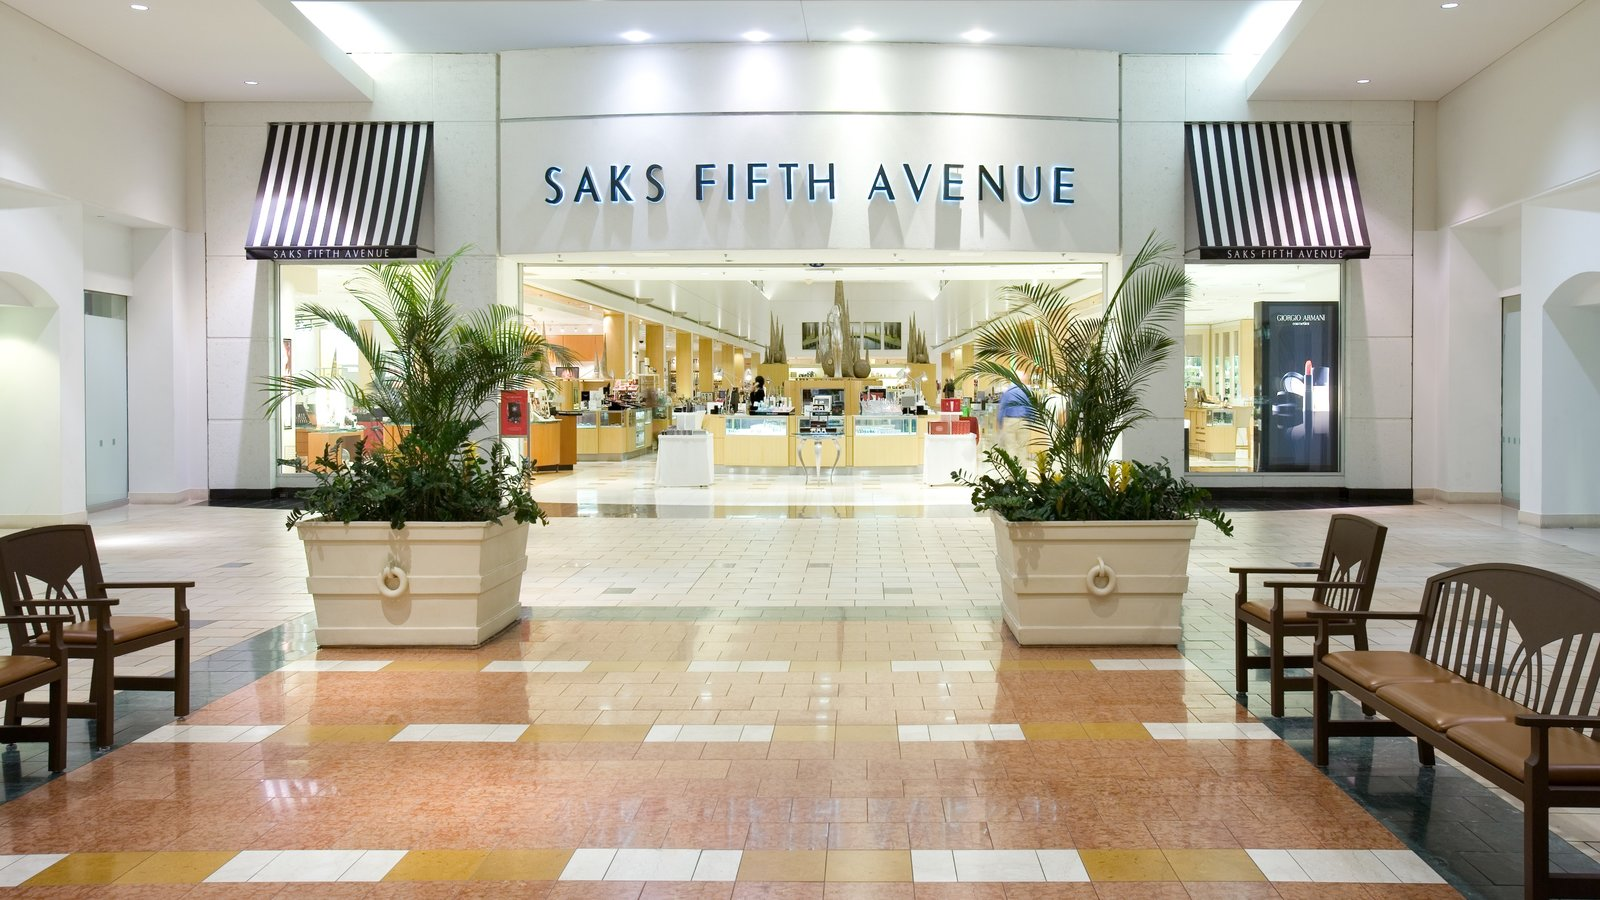 Florida Mall which includes interior views, signage and shopping